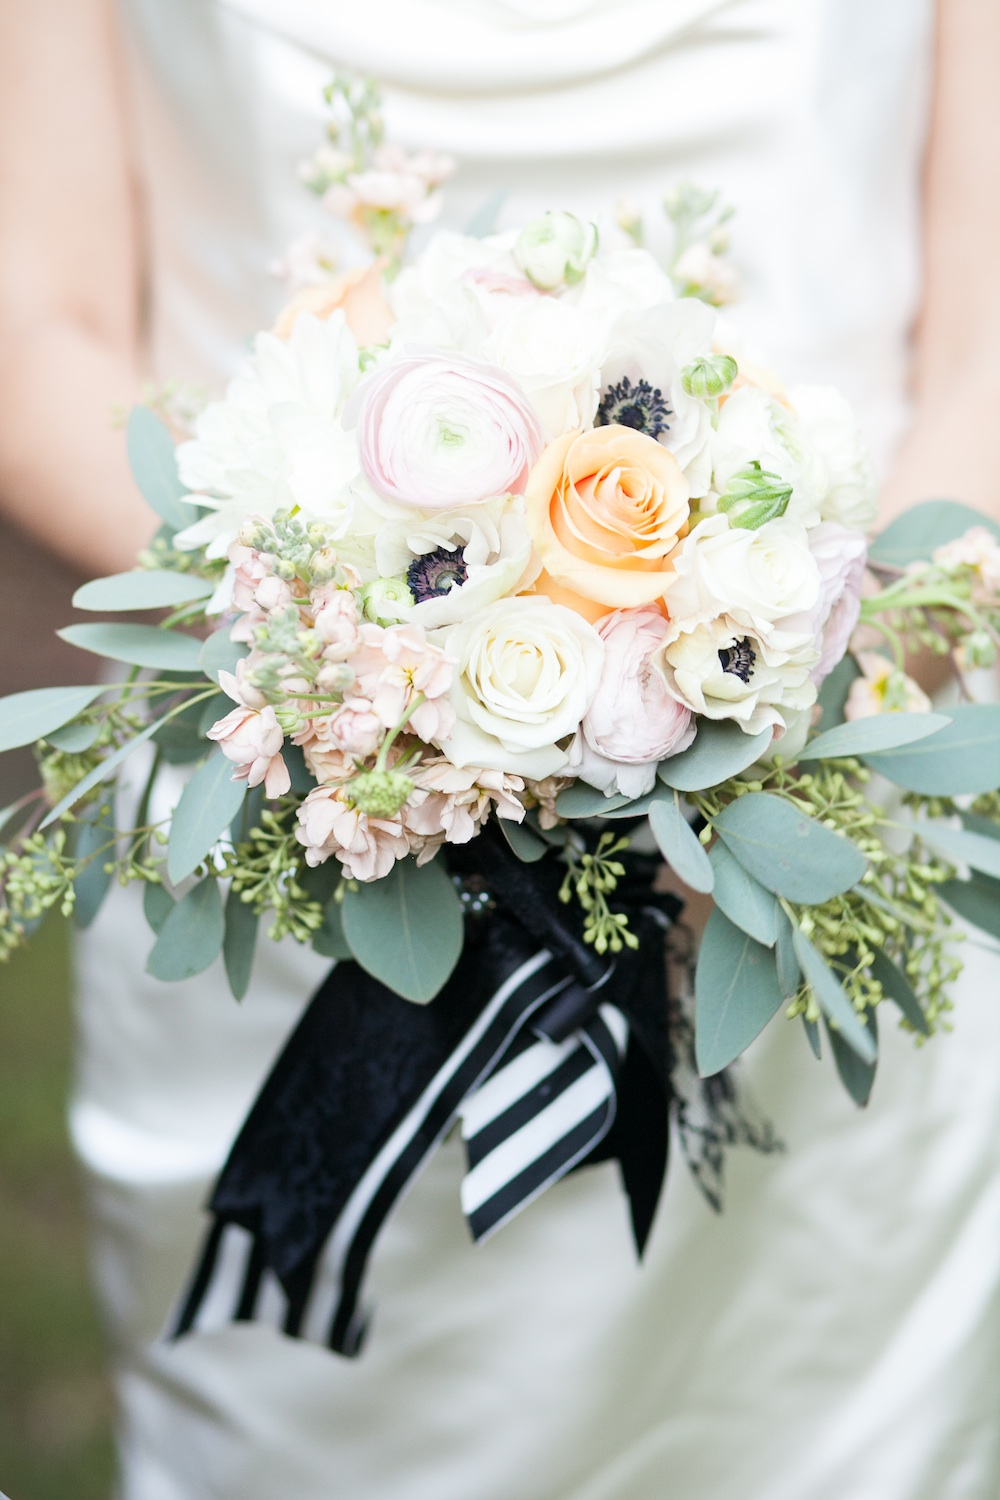 Stunning Bridal Bouquet from an Elegant Halloween Wedding Styled Shoot / florals by EightTreeStreet / photo by {a}strid Photography